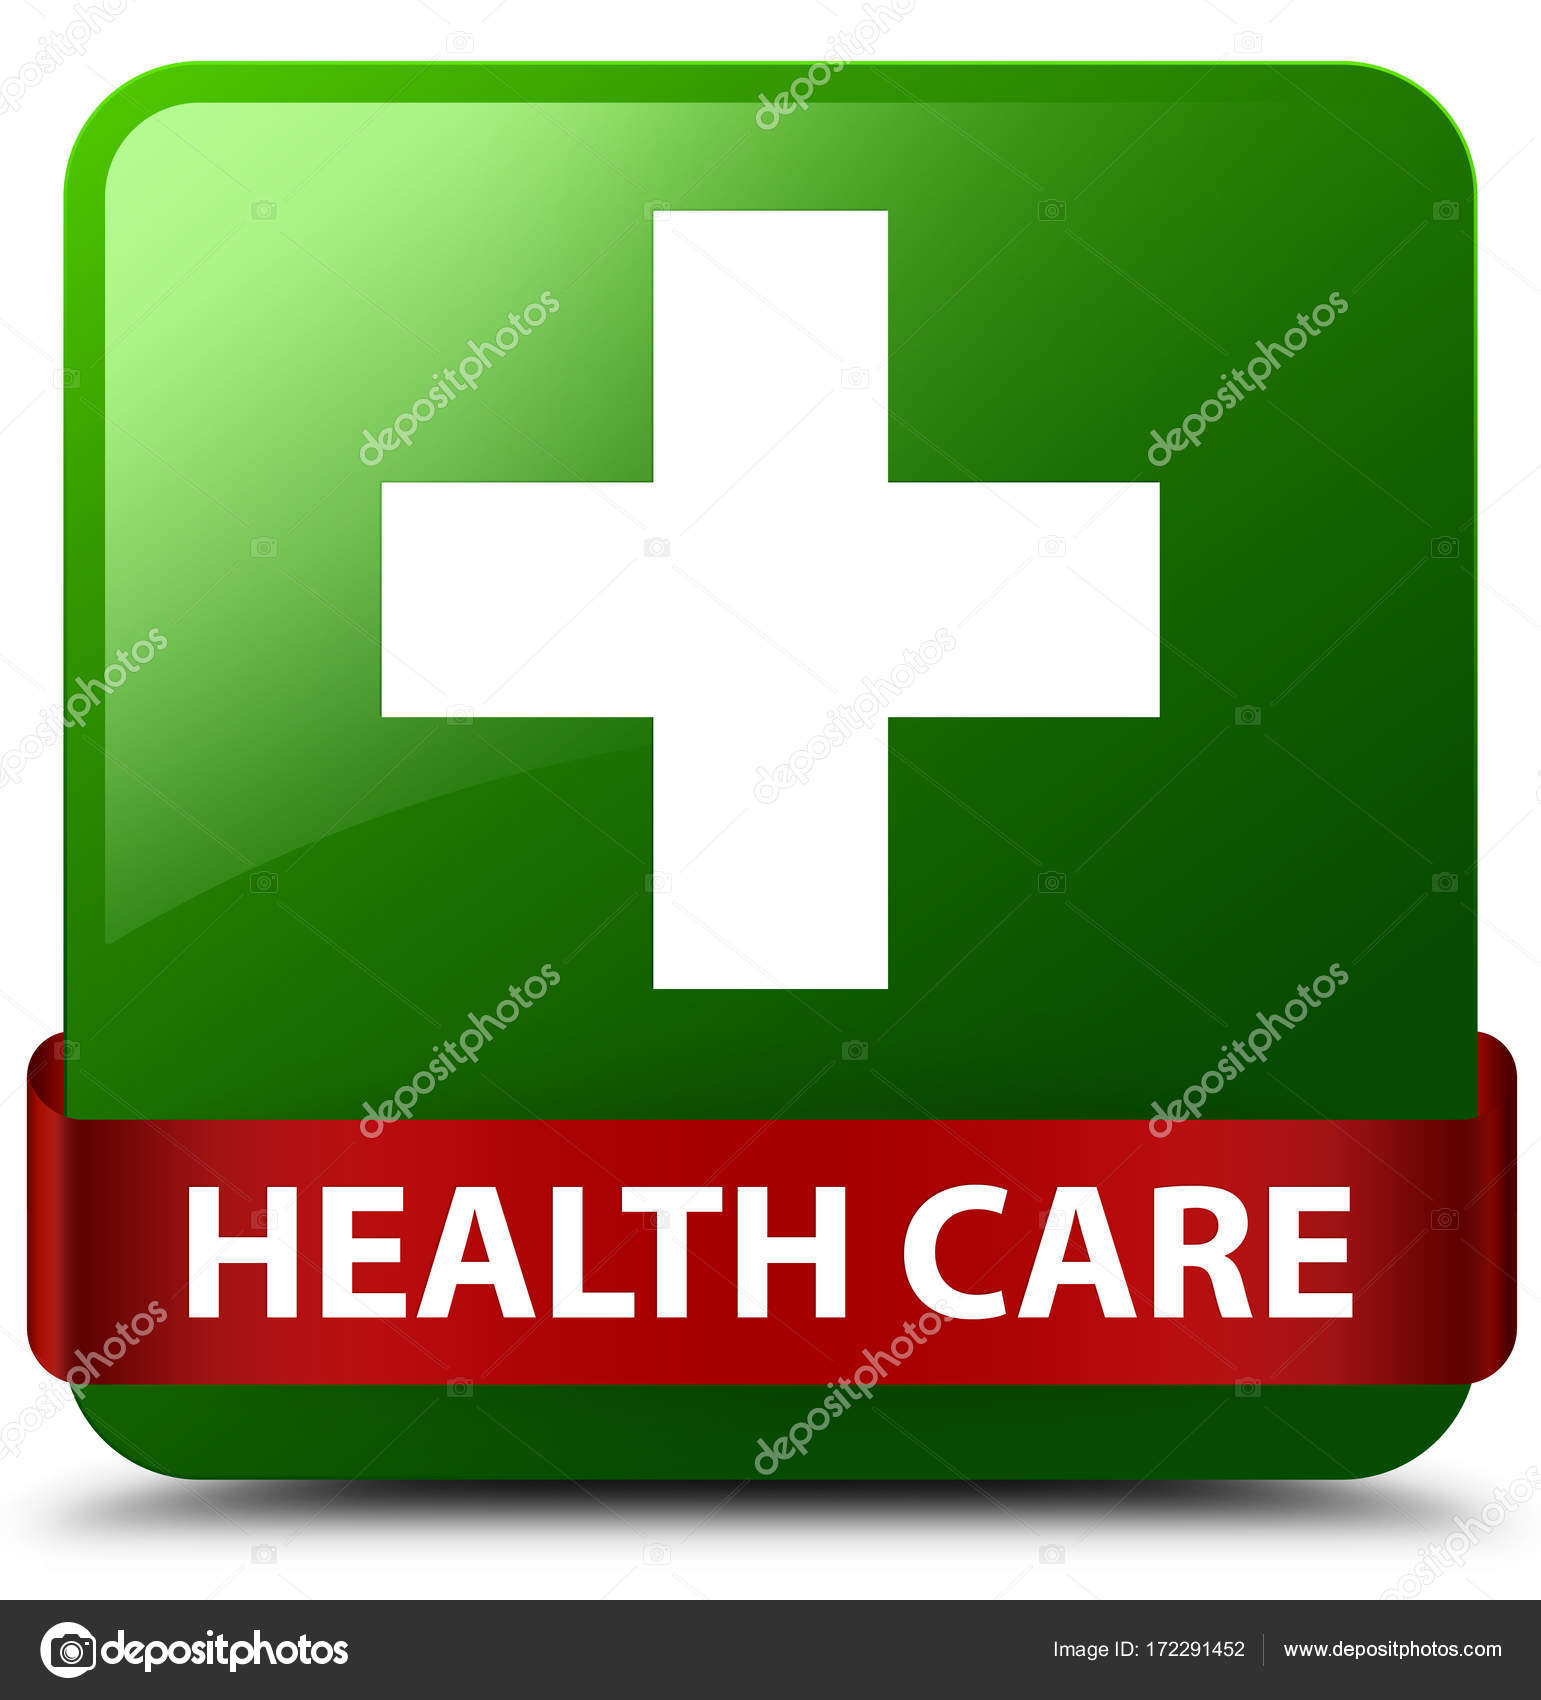 Health Care Plus Sign Green Square Button Red Ribbon In Middle